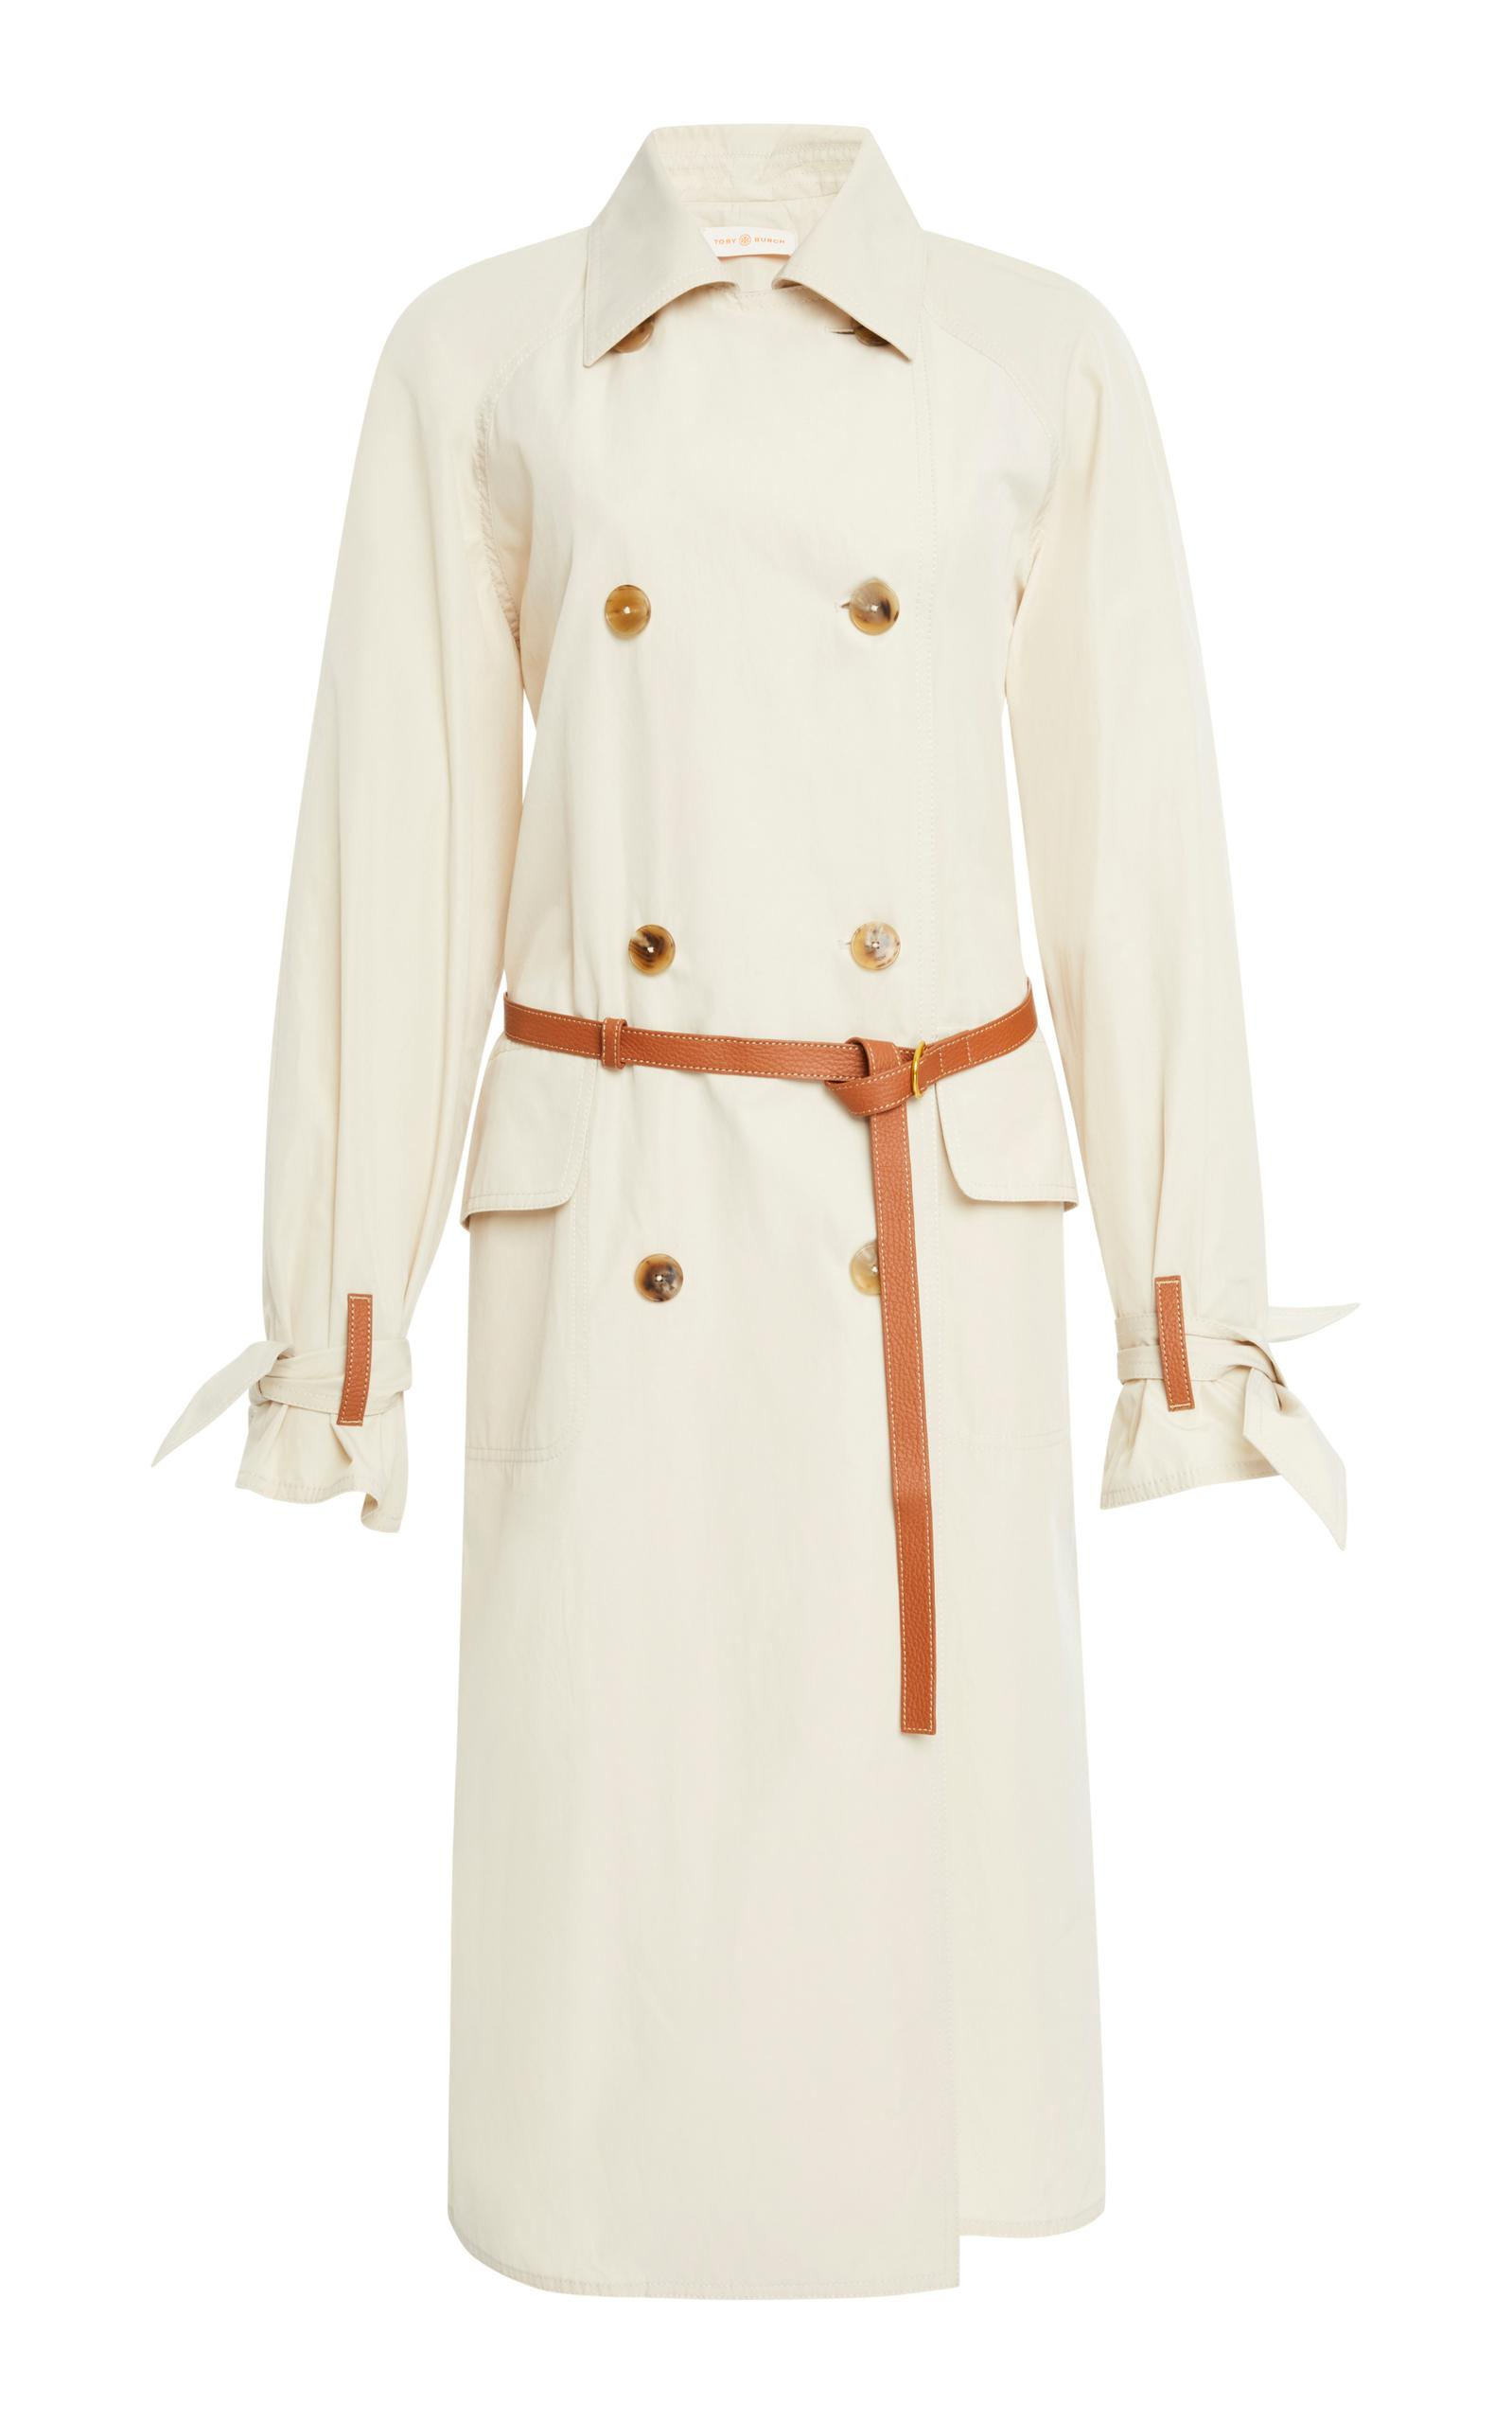 Tory Burch Mariella Belted Leather-Trimmed Poplin Trench Coat In Neutral